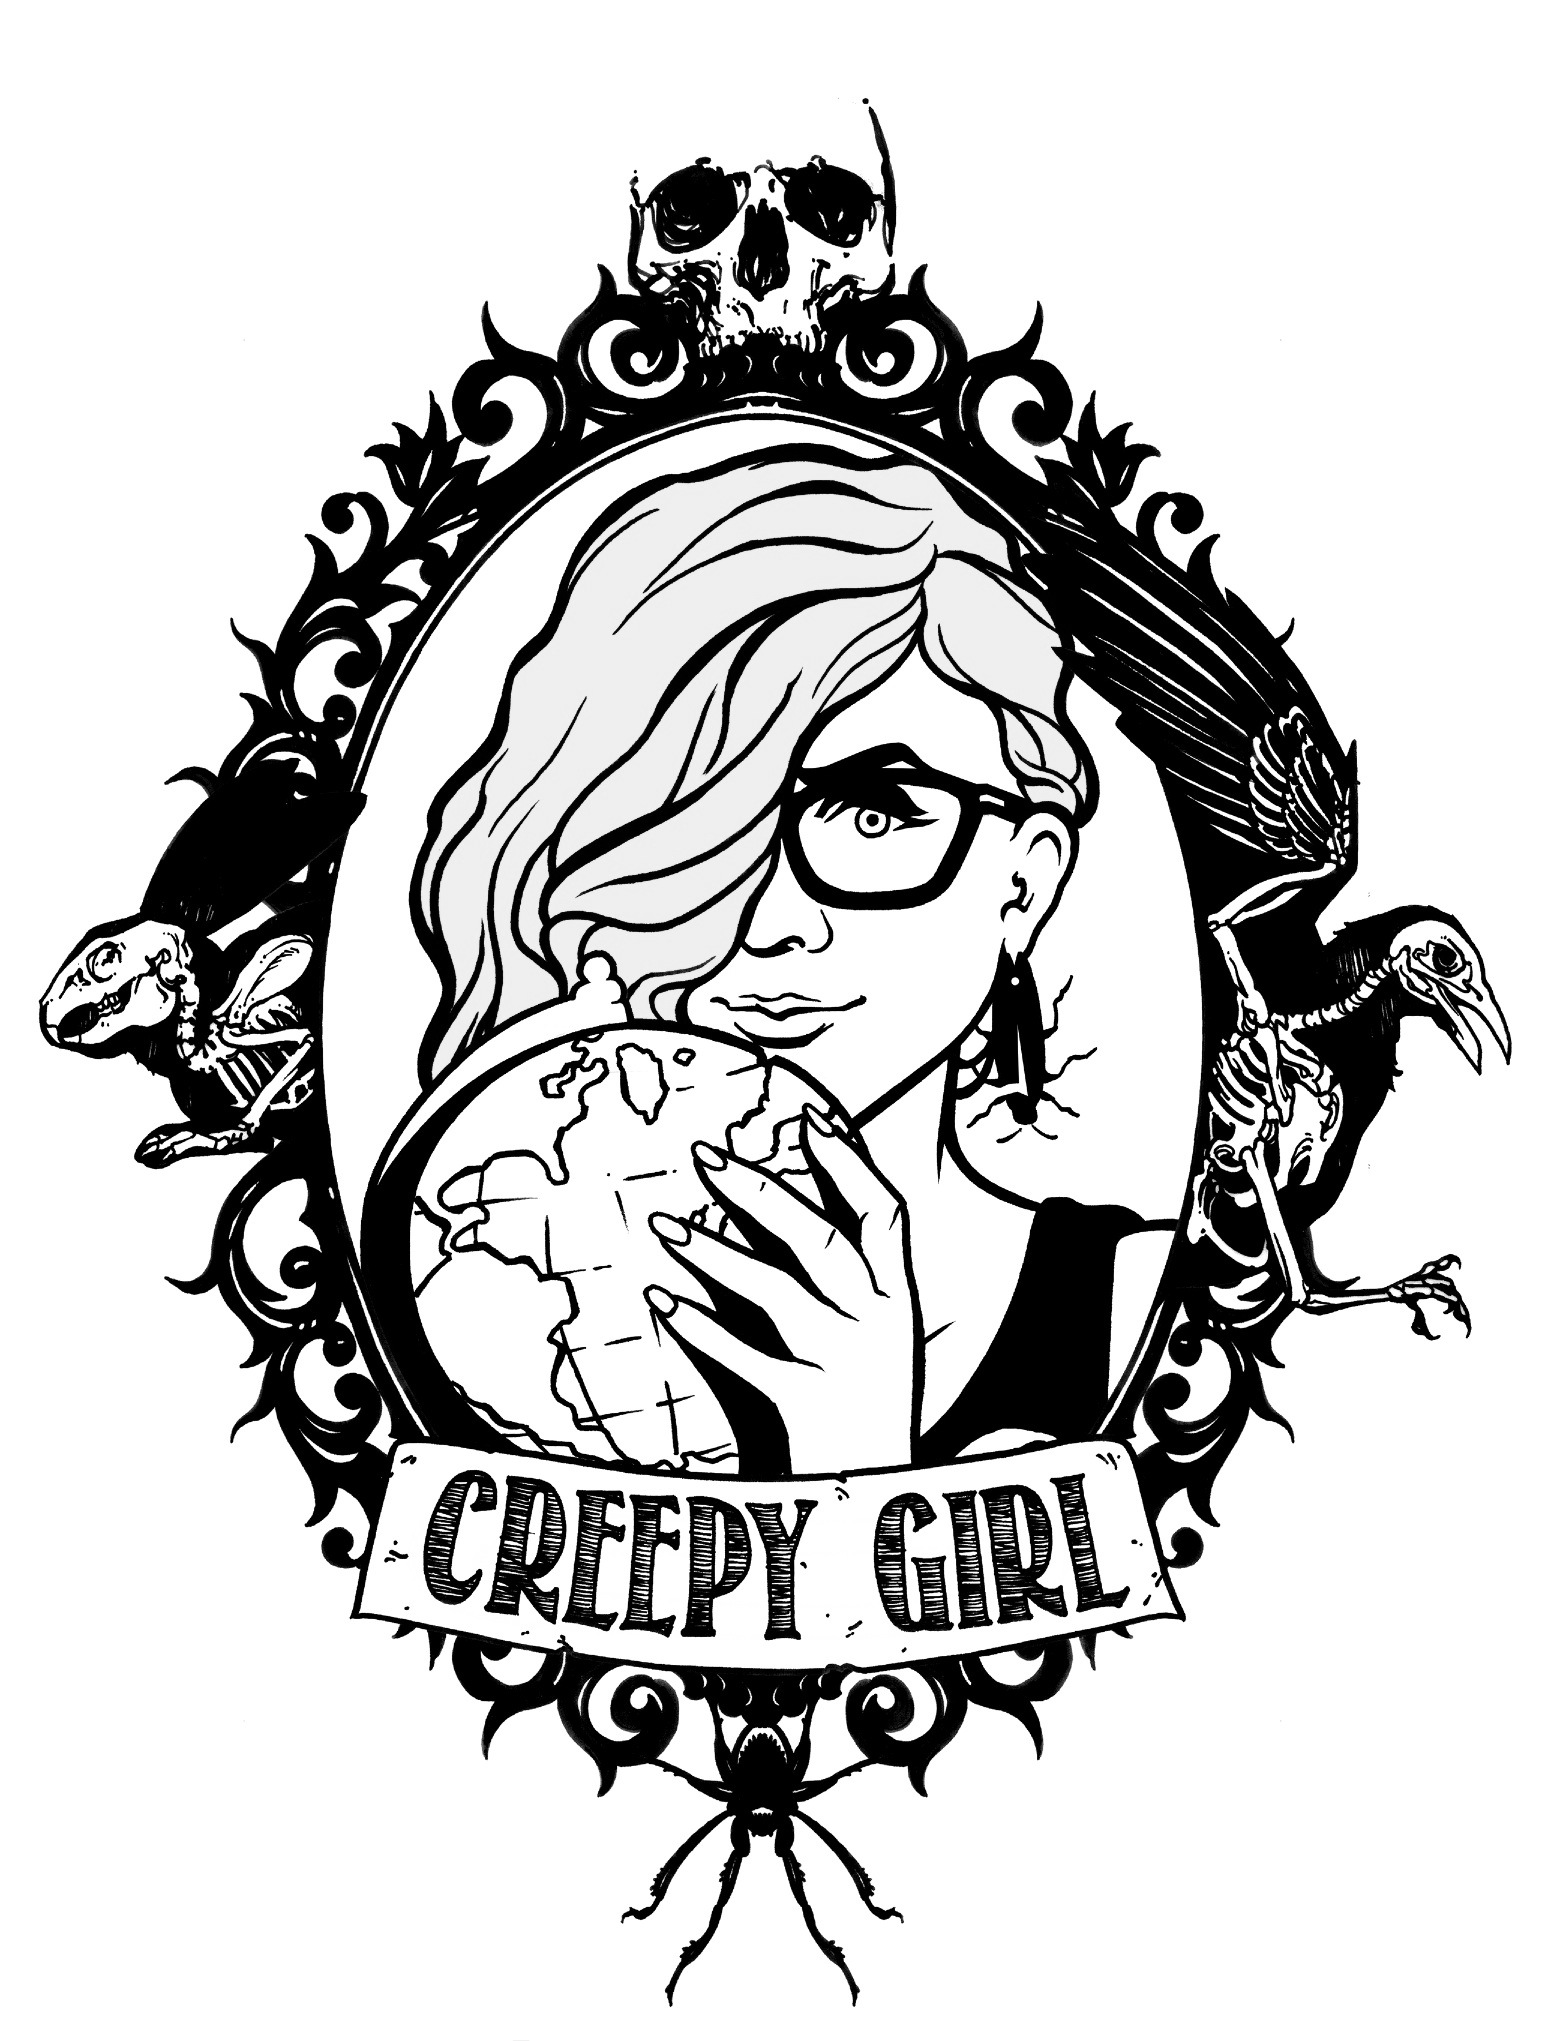 CREEPY GIRL TRAVELS